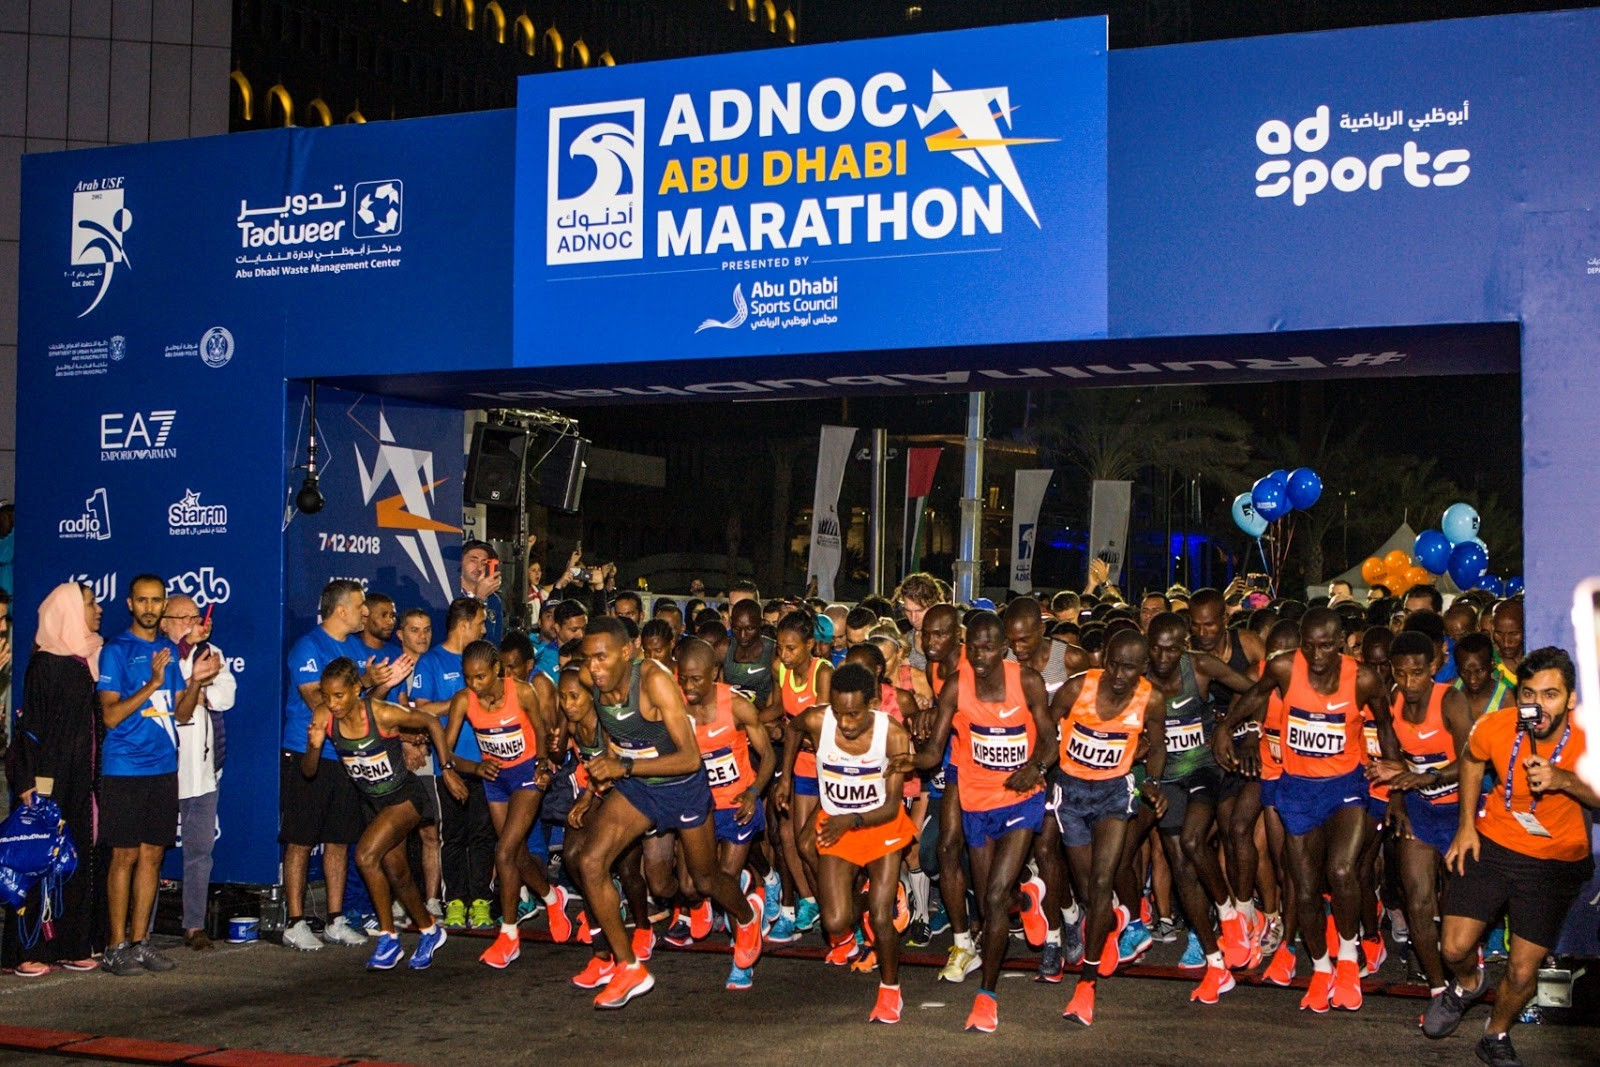 There is prize money of $388,000 to be won at the second Adnoc Abu Dhabi Marathon to be held on December 6